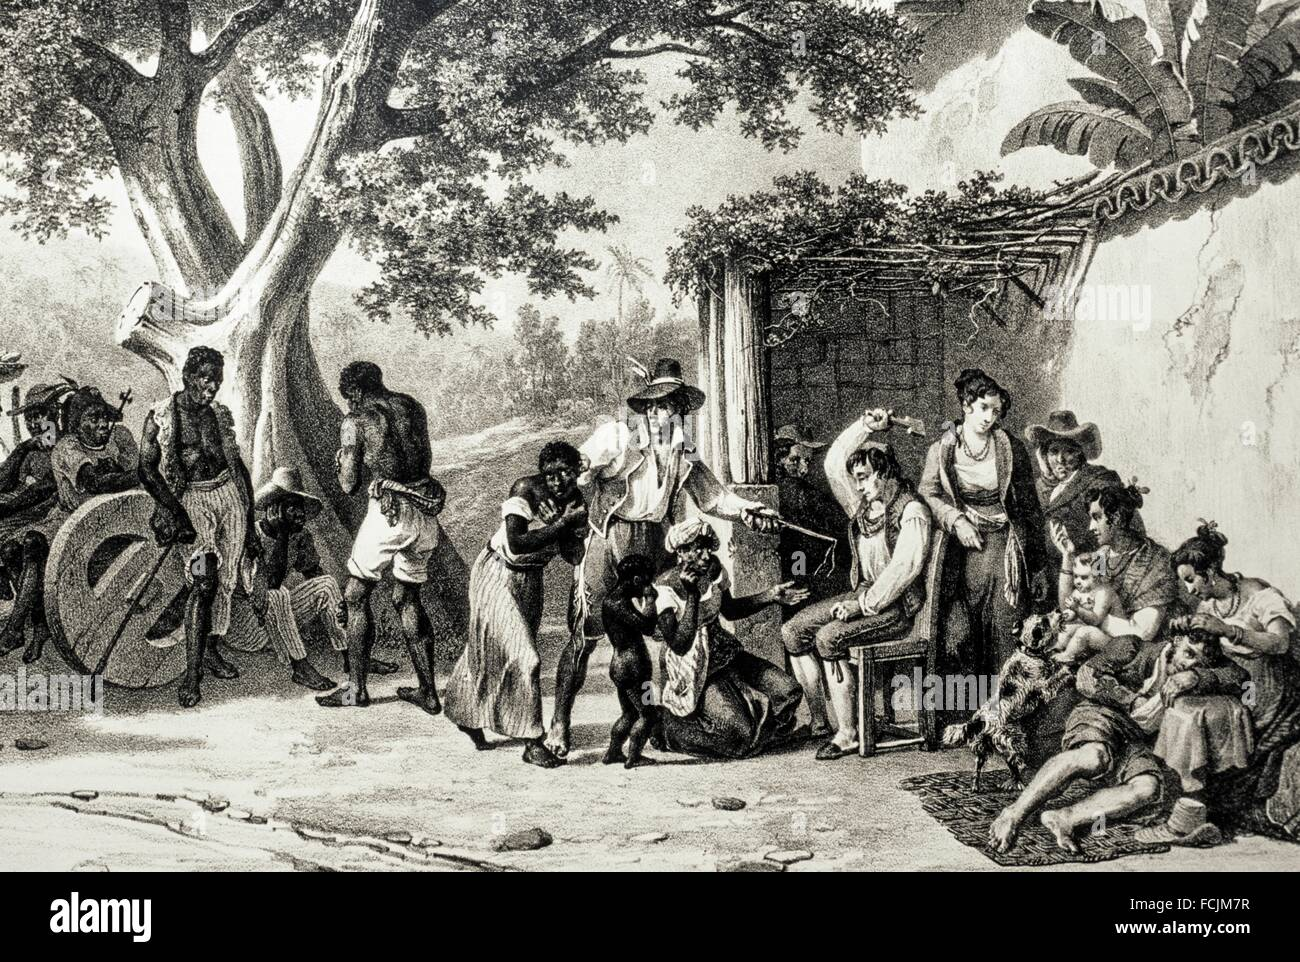 House of Negritude and Human Rights at Champagney, Haute-Saone department, Franche-Comte region of eastern France, - Stock Image